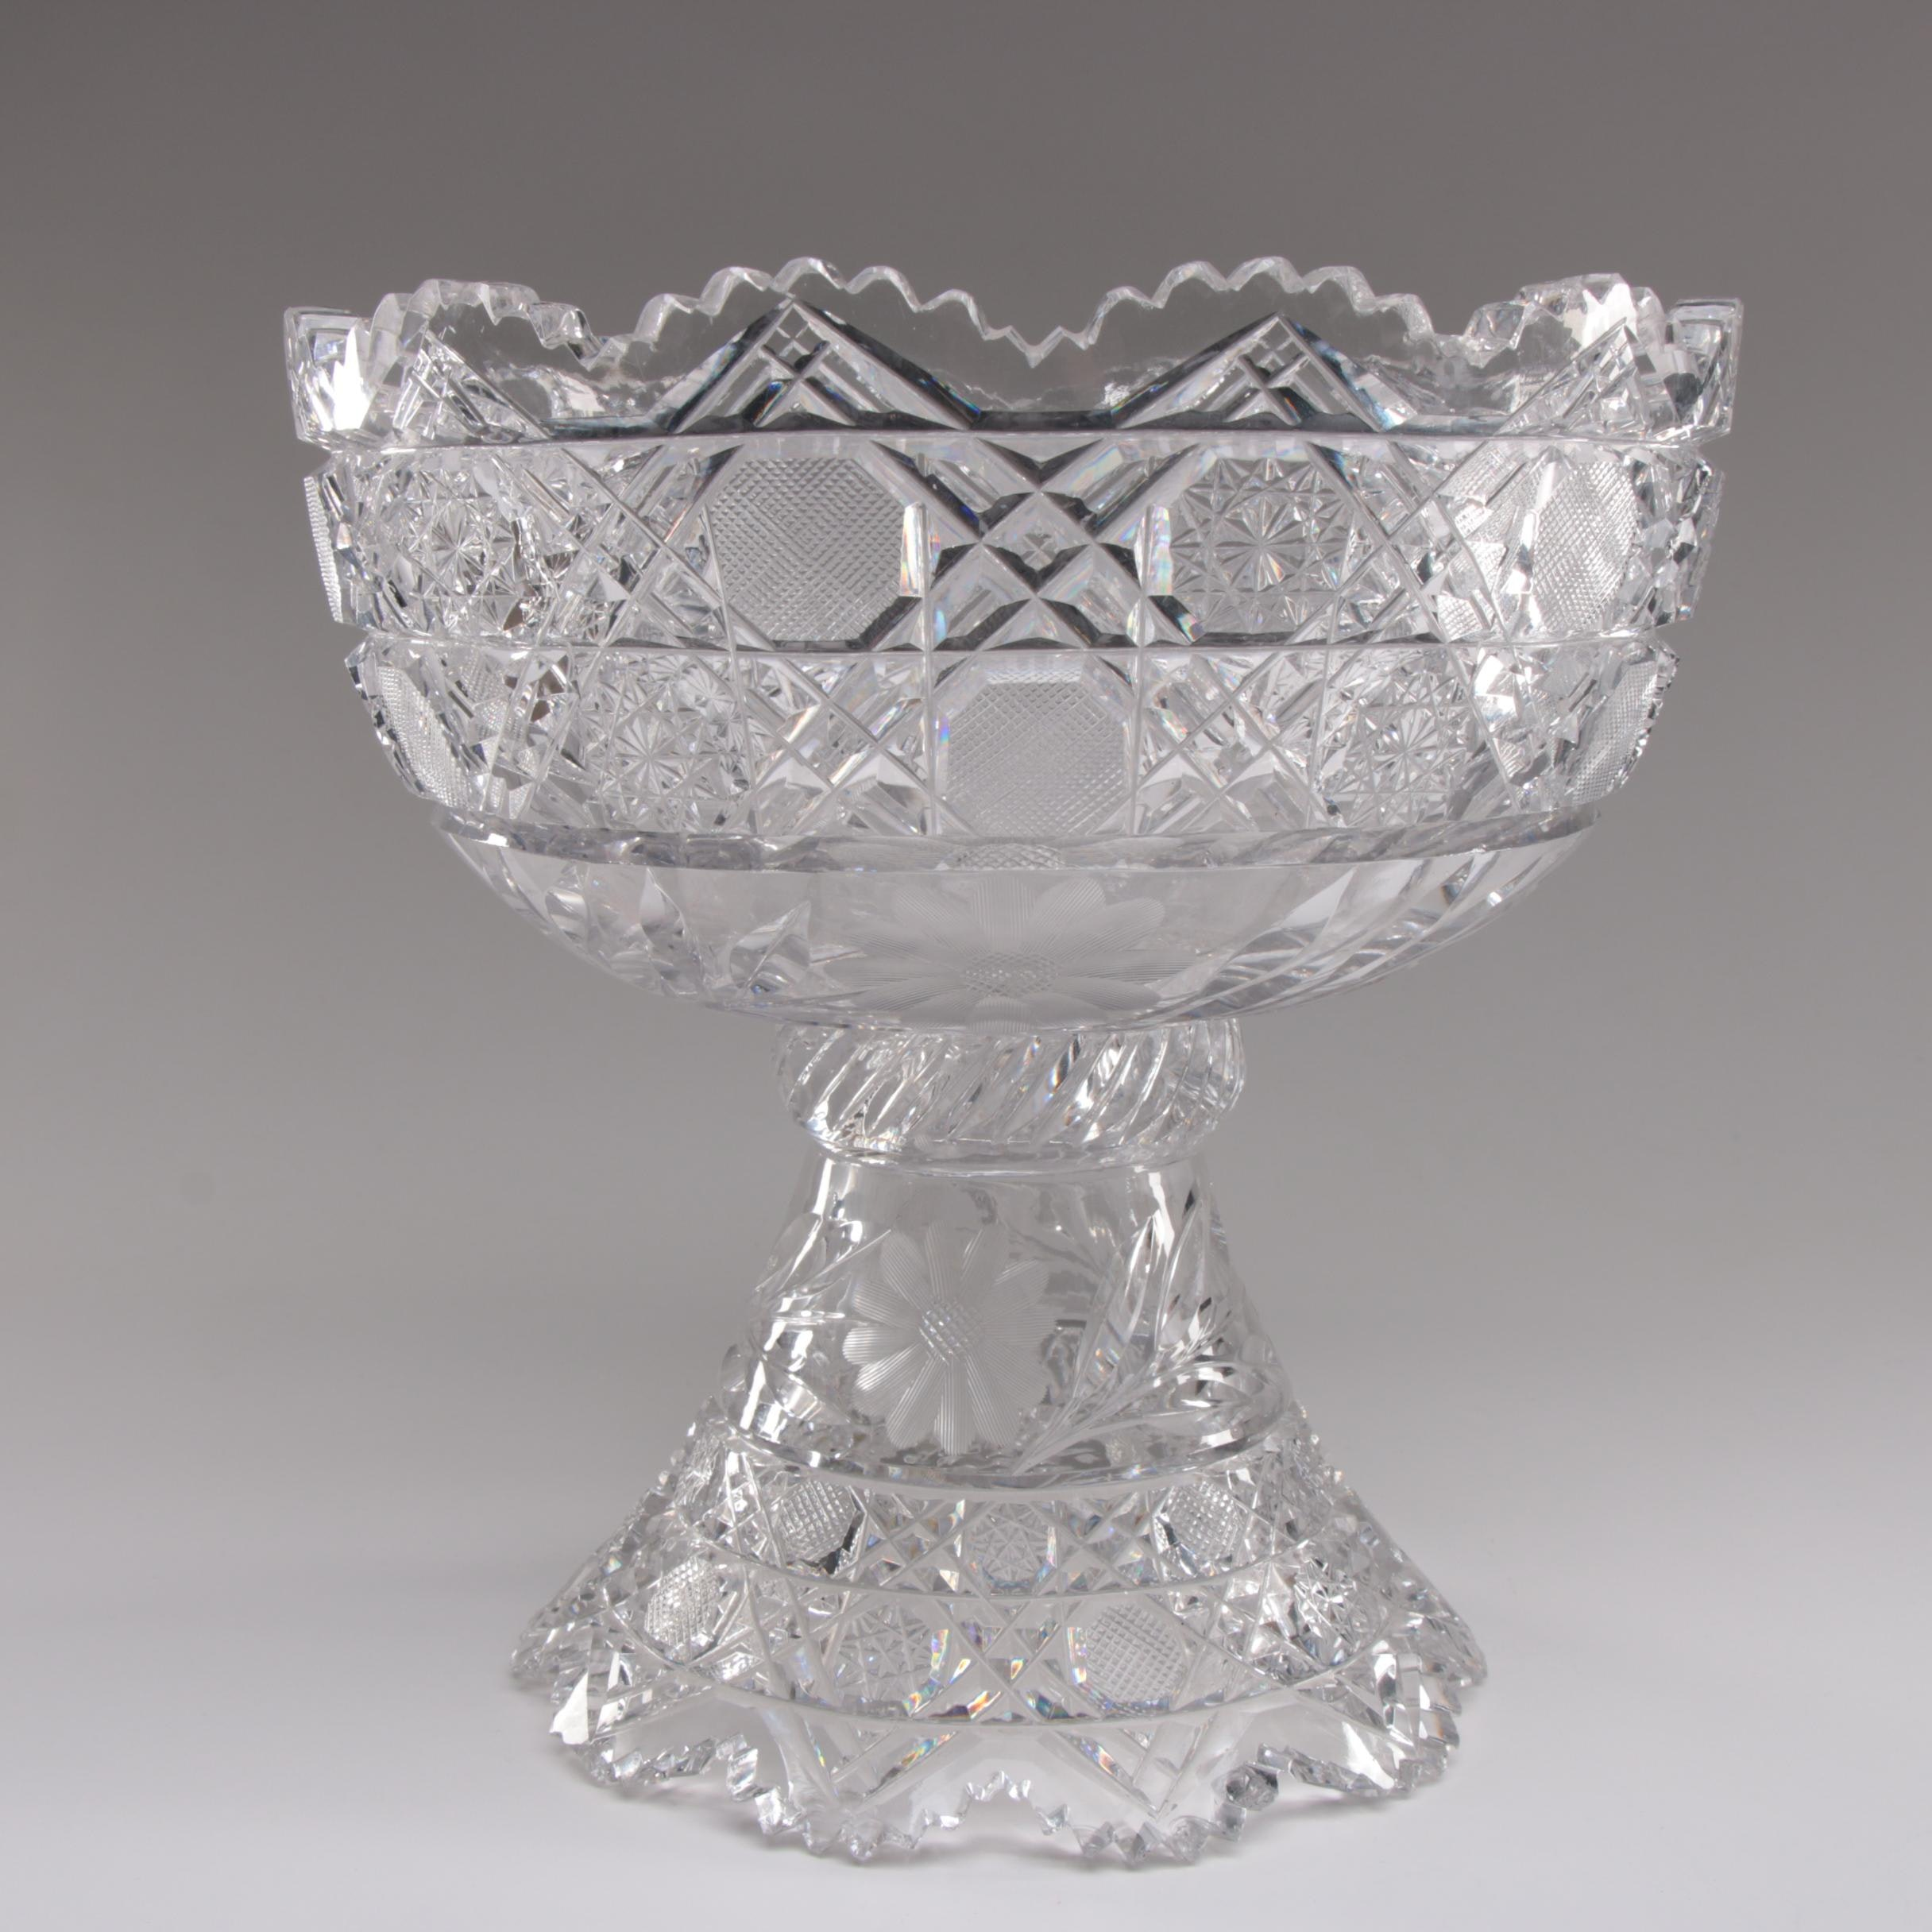 American Brilliant Cut Glass Punch Bowl, Late 19th/ Early 20th Century